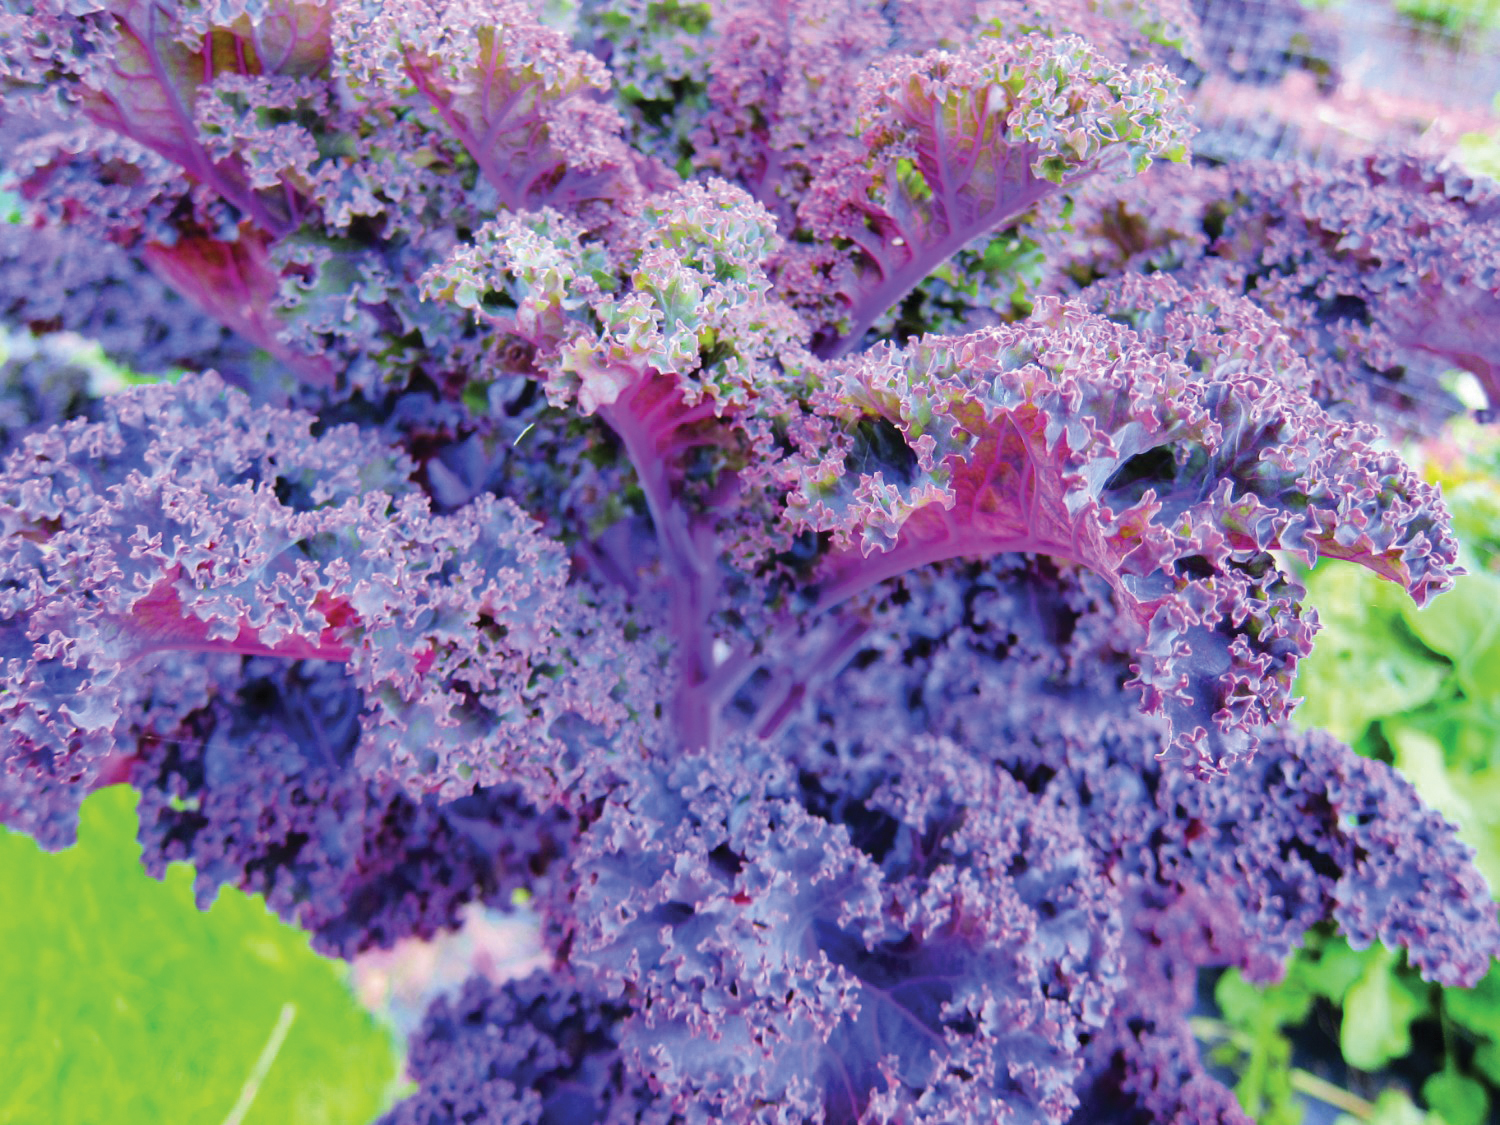 All Hail Kale: Good Organic Gardening